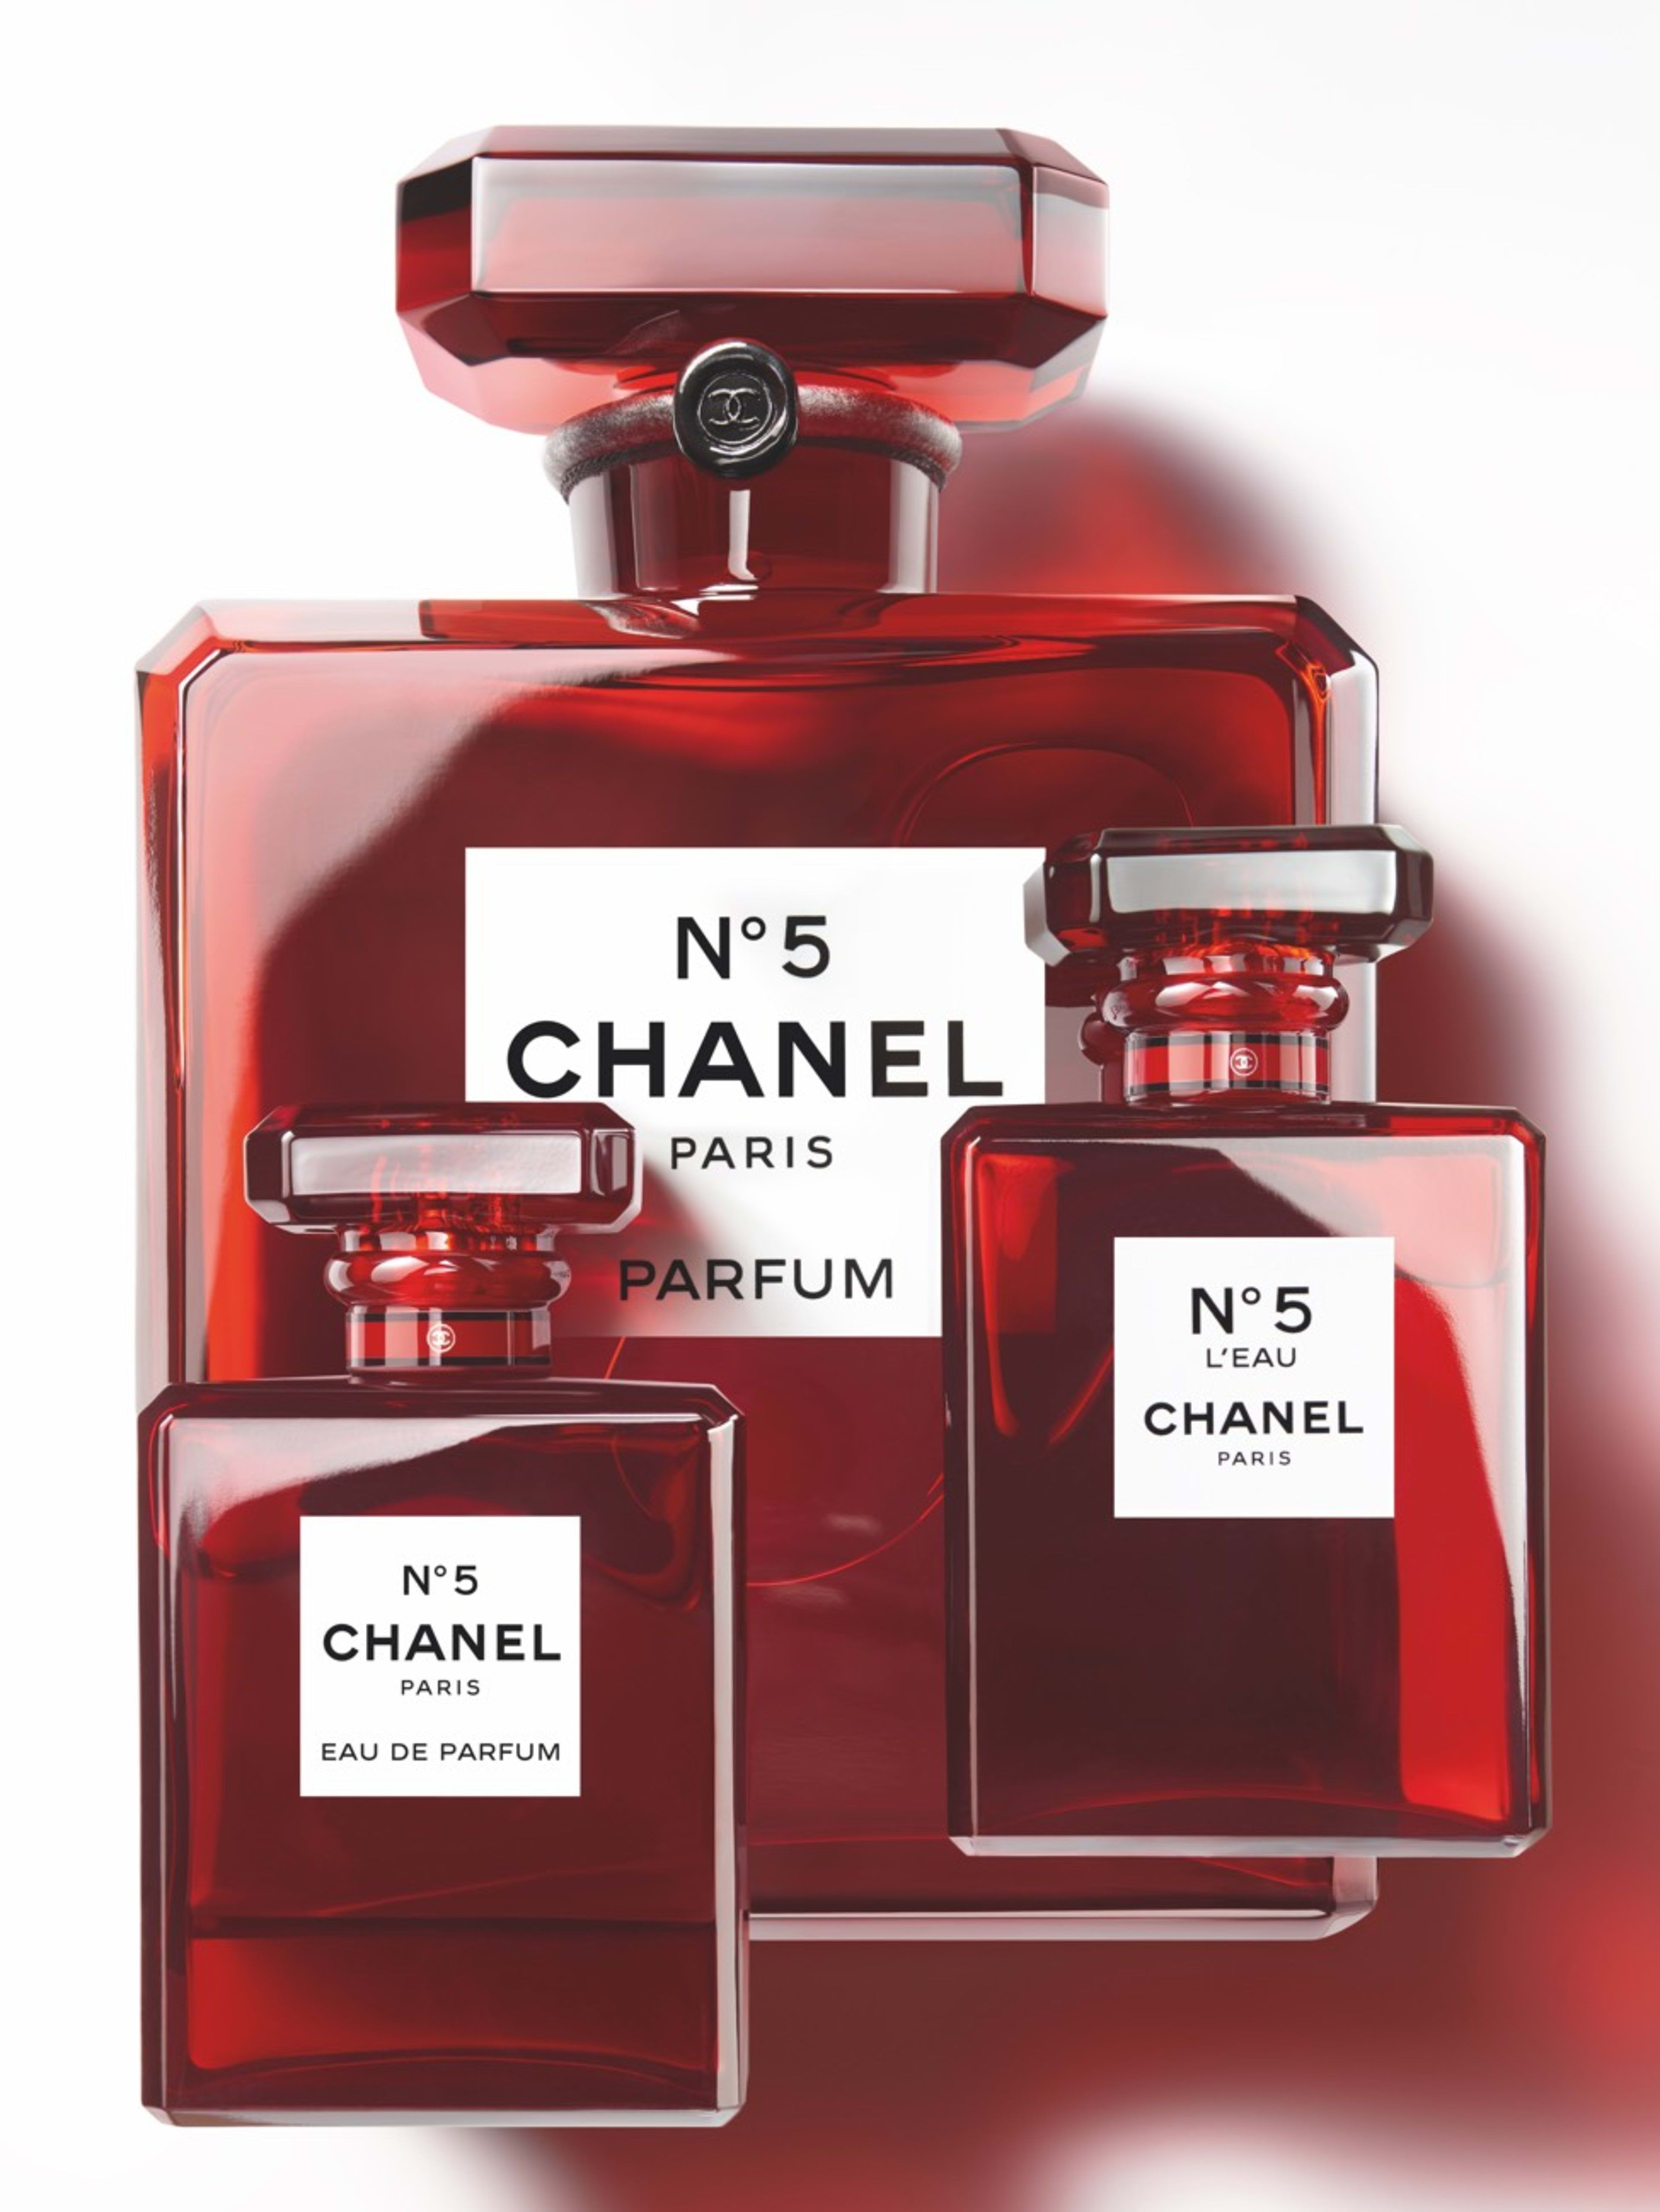 N5 Limited Edition Grand Extrait Parfum In 2019 Color Red